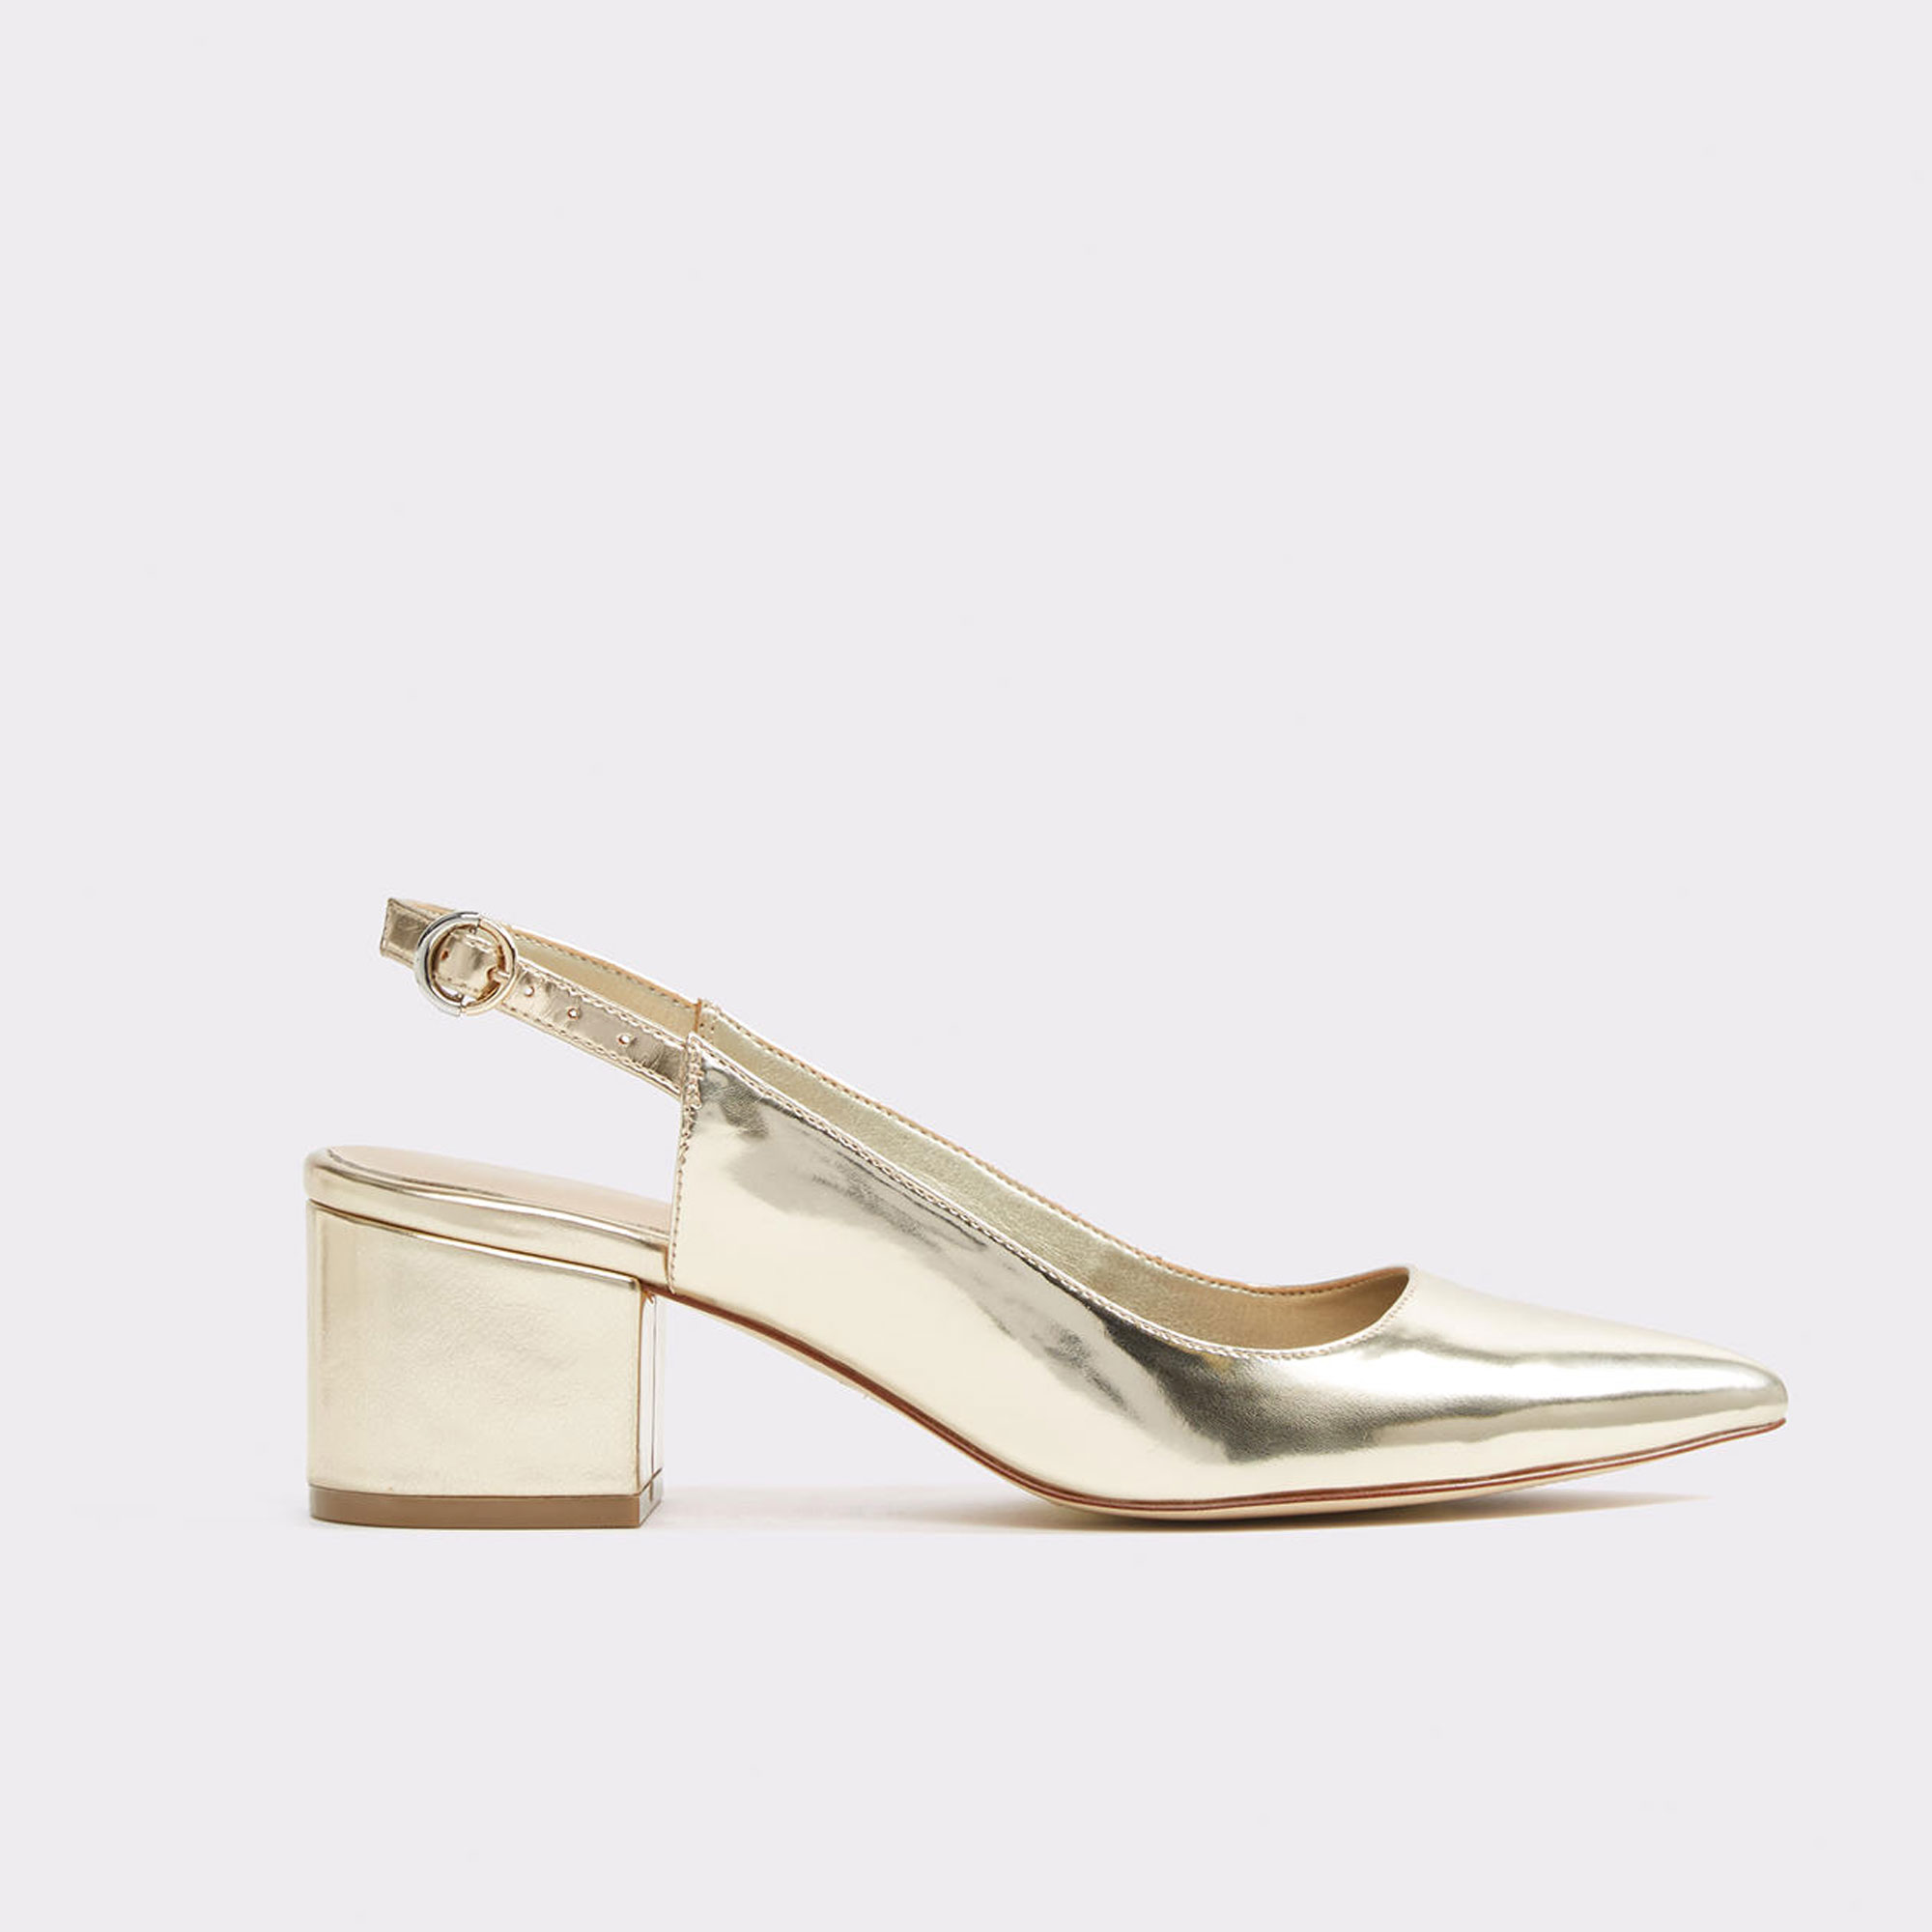 UNDER $100 SPRING FINDSSilver shoesCourtesy Aldo